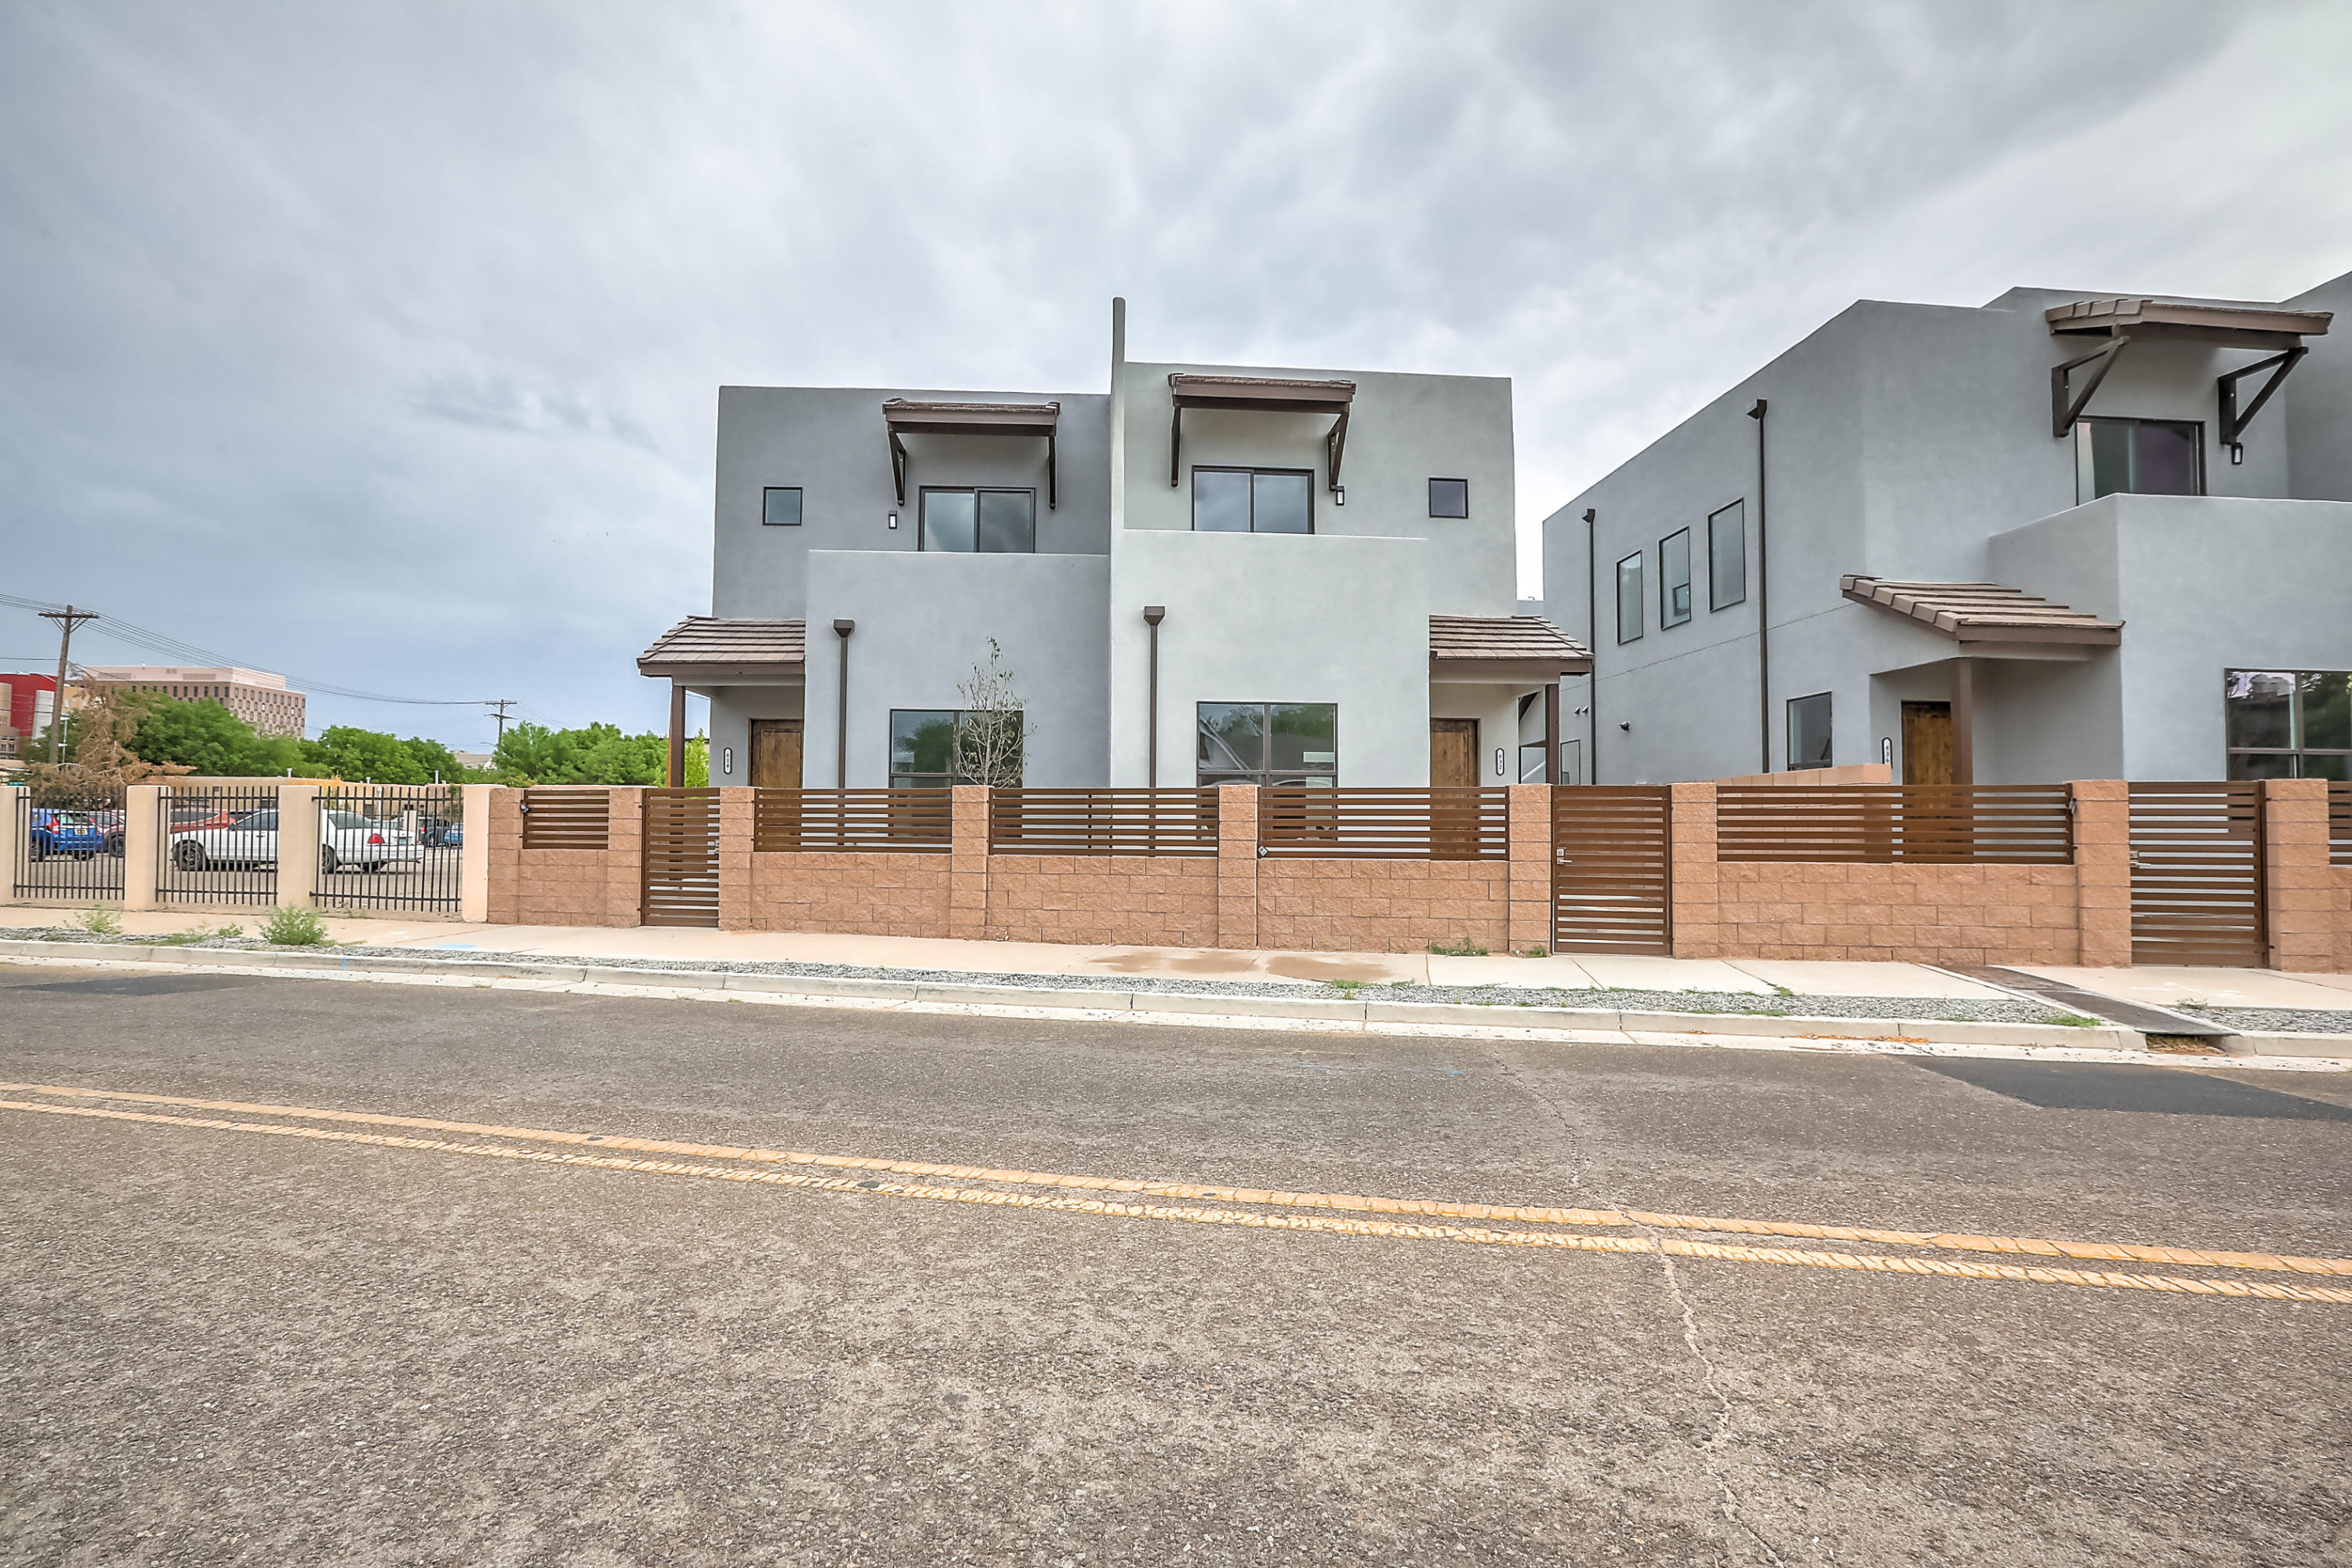 Ibiza Townhomes! Brand New Custom Built Two Story Townhomes, located in the trendy downtown ABQ! Location, Location, Location! These amazing homes are built with custom flooring, tall ceilings, full overlay cabinetry and granite counter tops. The 3 bedroom design includes two full bathroom, plus a 1/2 bath for guests. Custom touches in every bathroom like tub to ceiling 3-D style tile, furniture style vanities and tankless water heaters, plus AC combo units for you hot and cold needs. Enjoy the large finished double car garage with plenty of parking on the oversized drive pad..